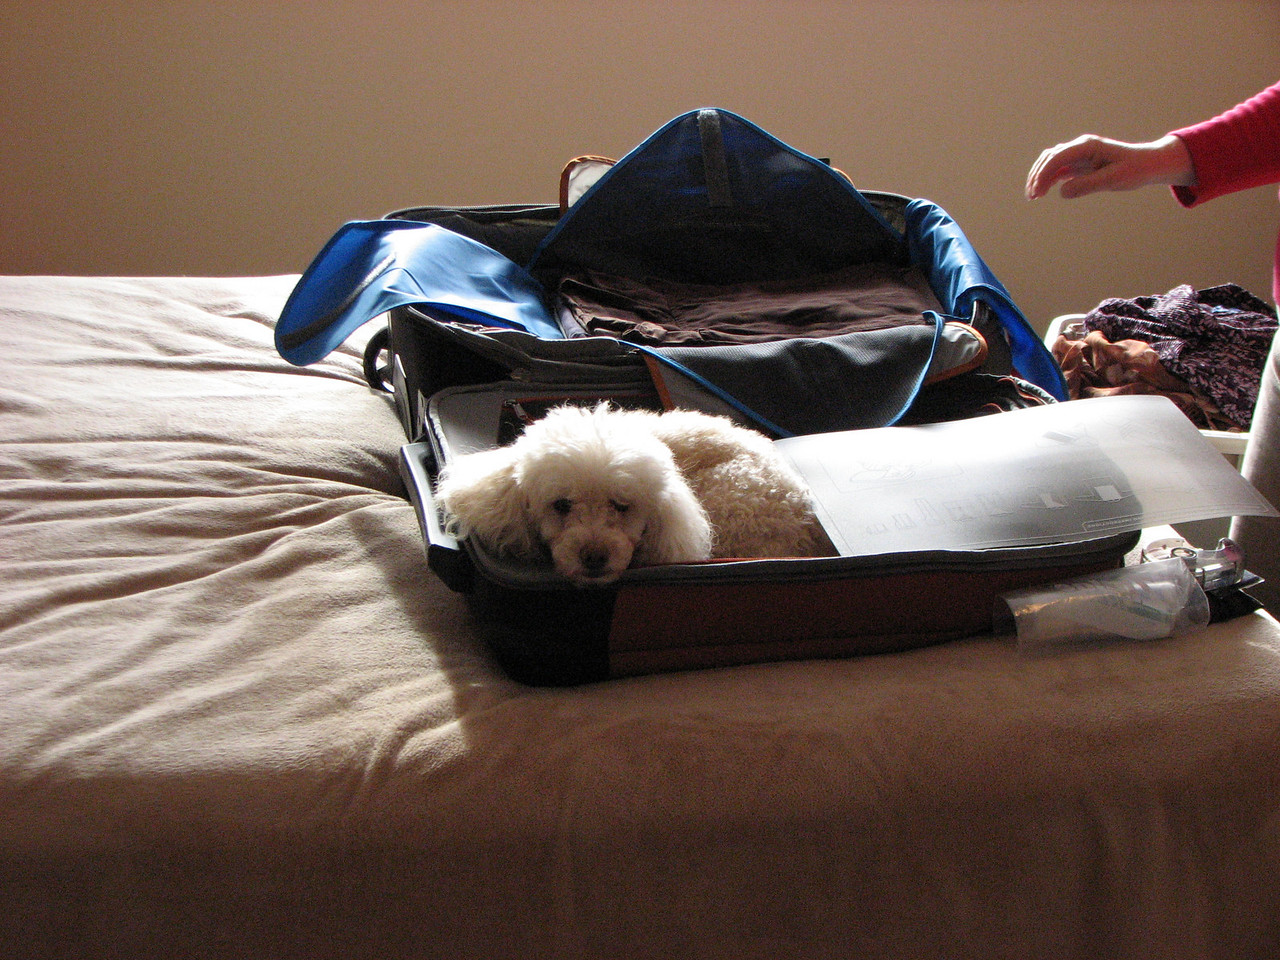 The dog did not like us leaving. Hopped right back in the suitcase on arrival.